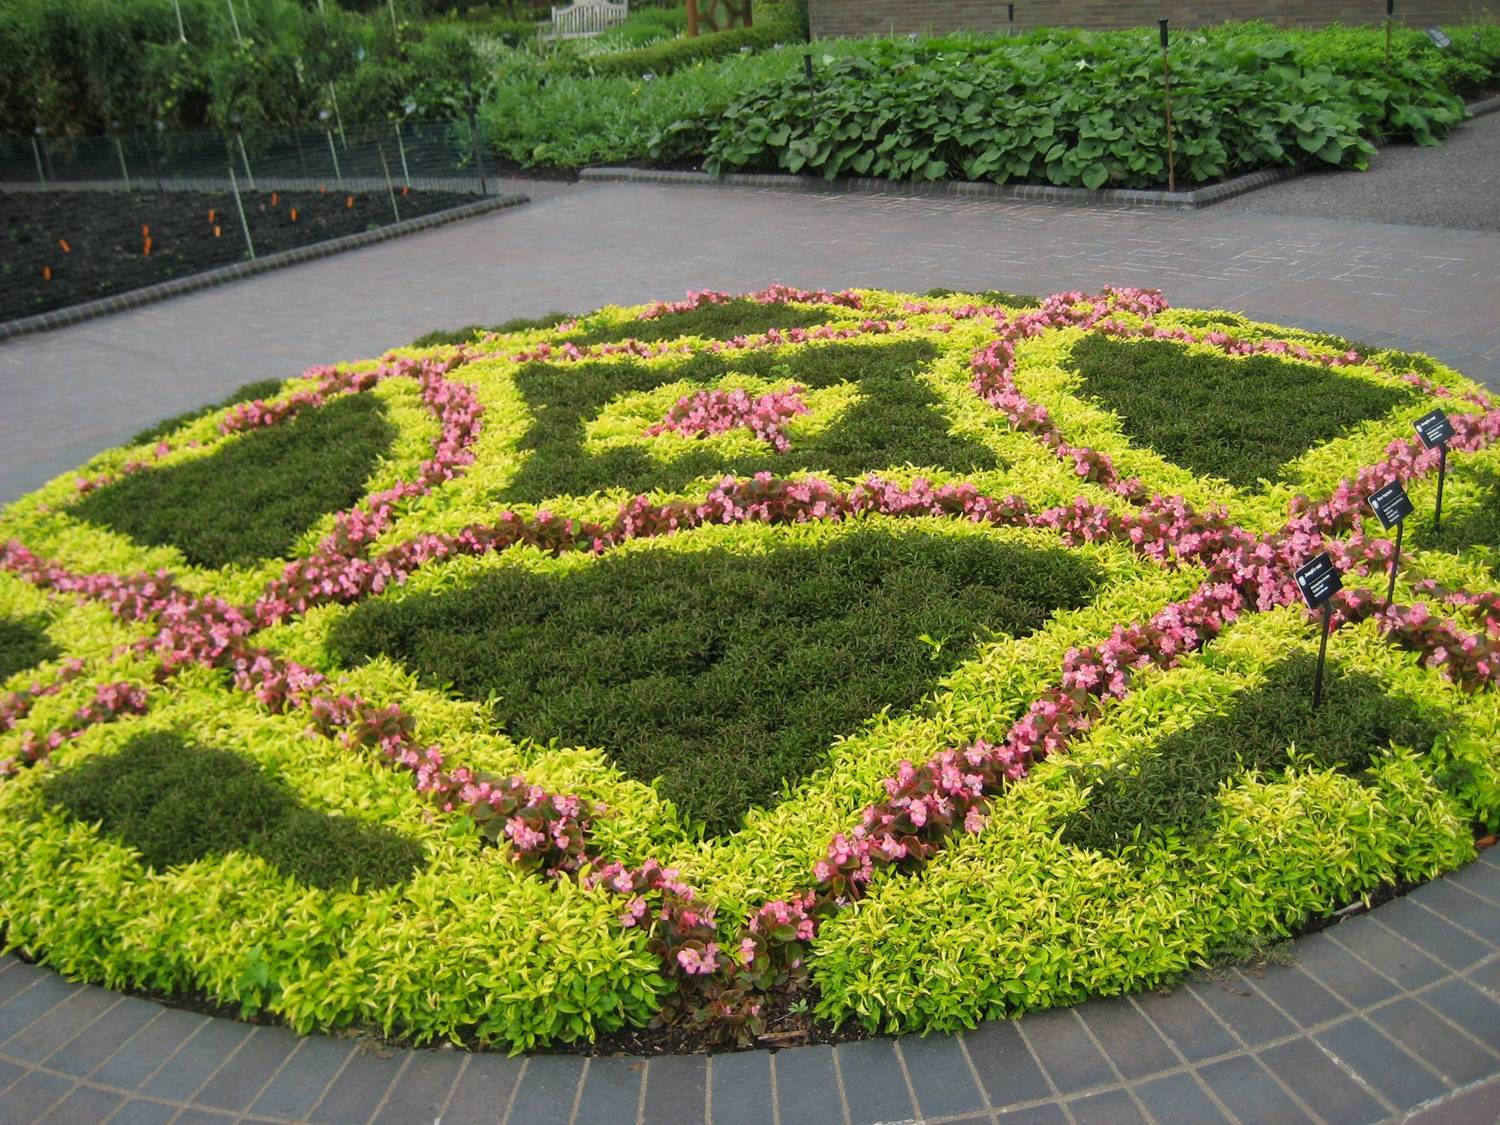 Basic design principles and styles for garden beds for Round flower bed ideas